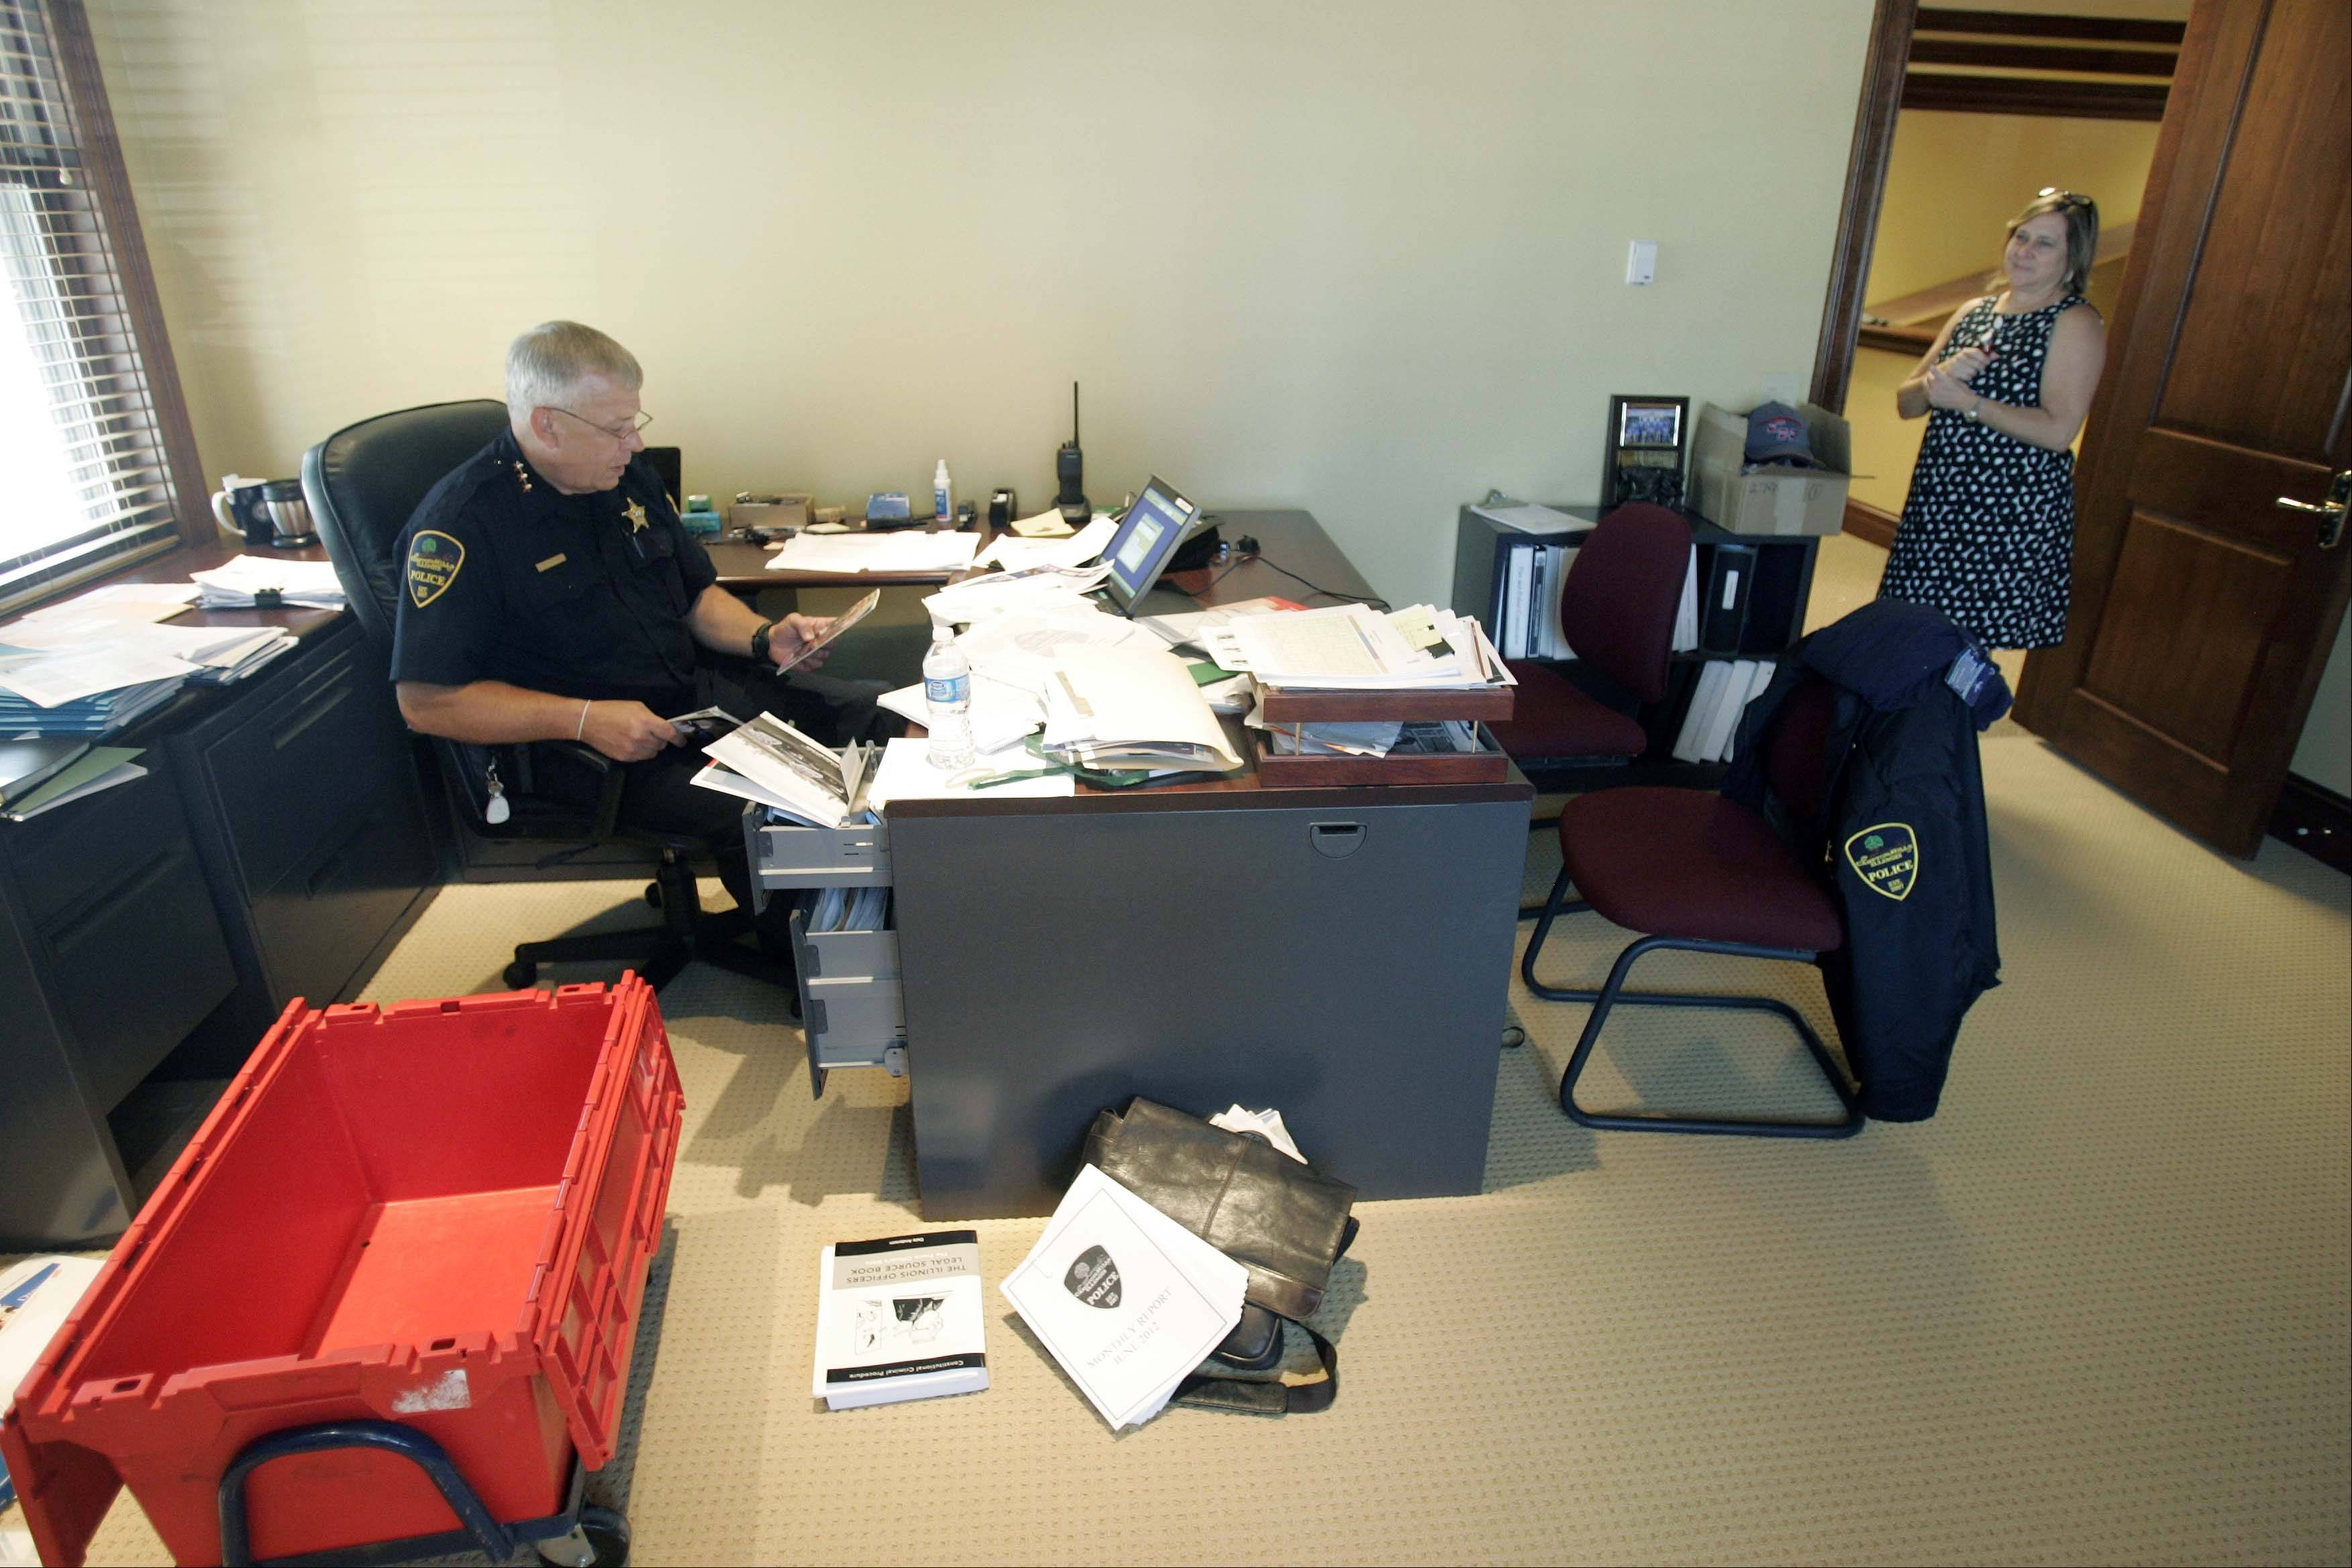 Campton Hills Village President Patsy Smith checks on Police Daniel Hoffman as he settles into his office Tuesday at the new Campton Hills Village Hall.